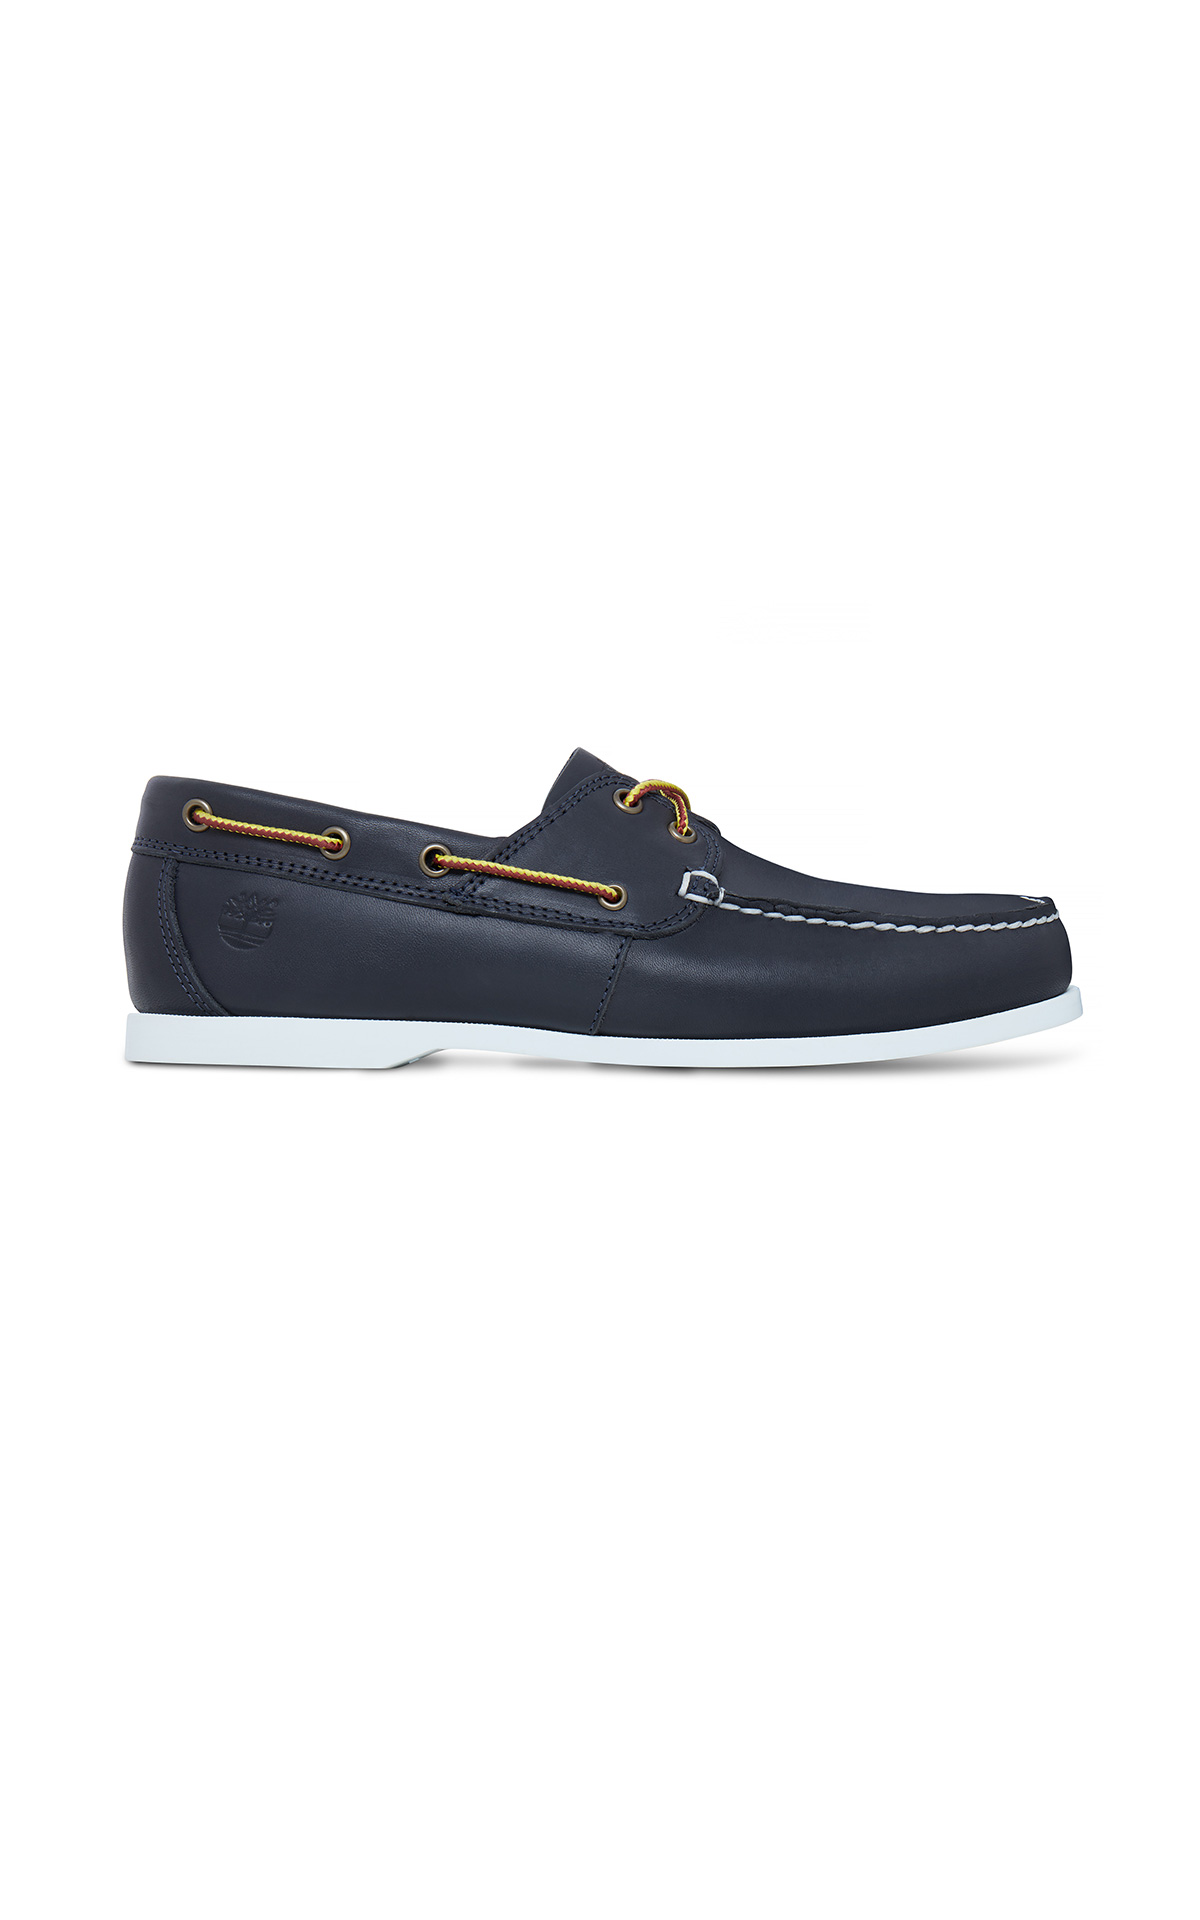 Timberland boat shoe at The Bicester Village Shopping Collection